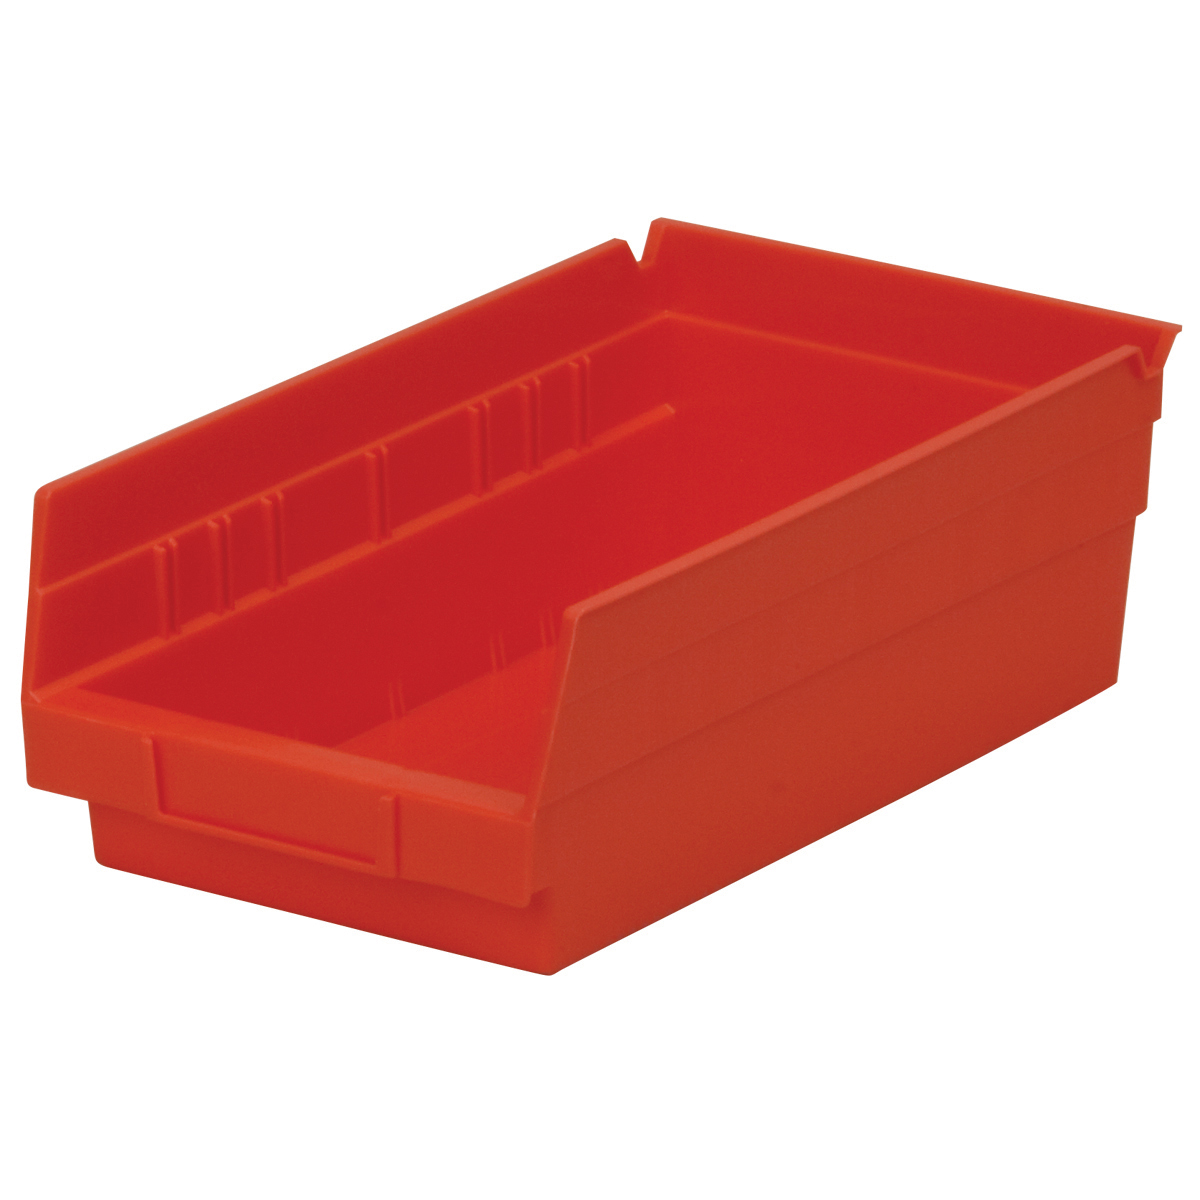 Shelf Bin 11-5/8 x 6-5/8 x 4, Red (30130RED).  This item sold in carton quantities of 12.